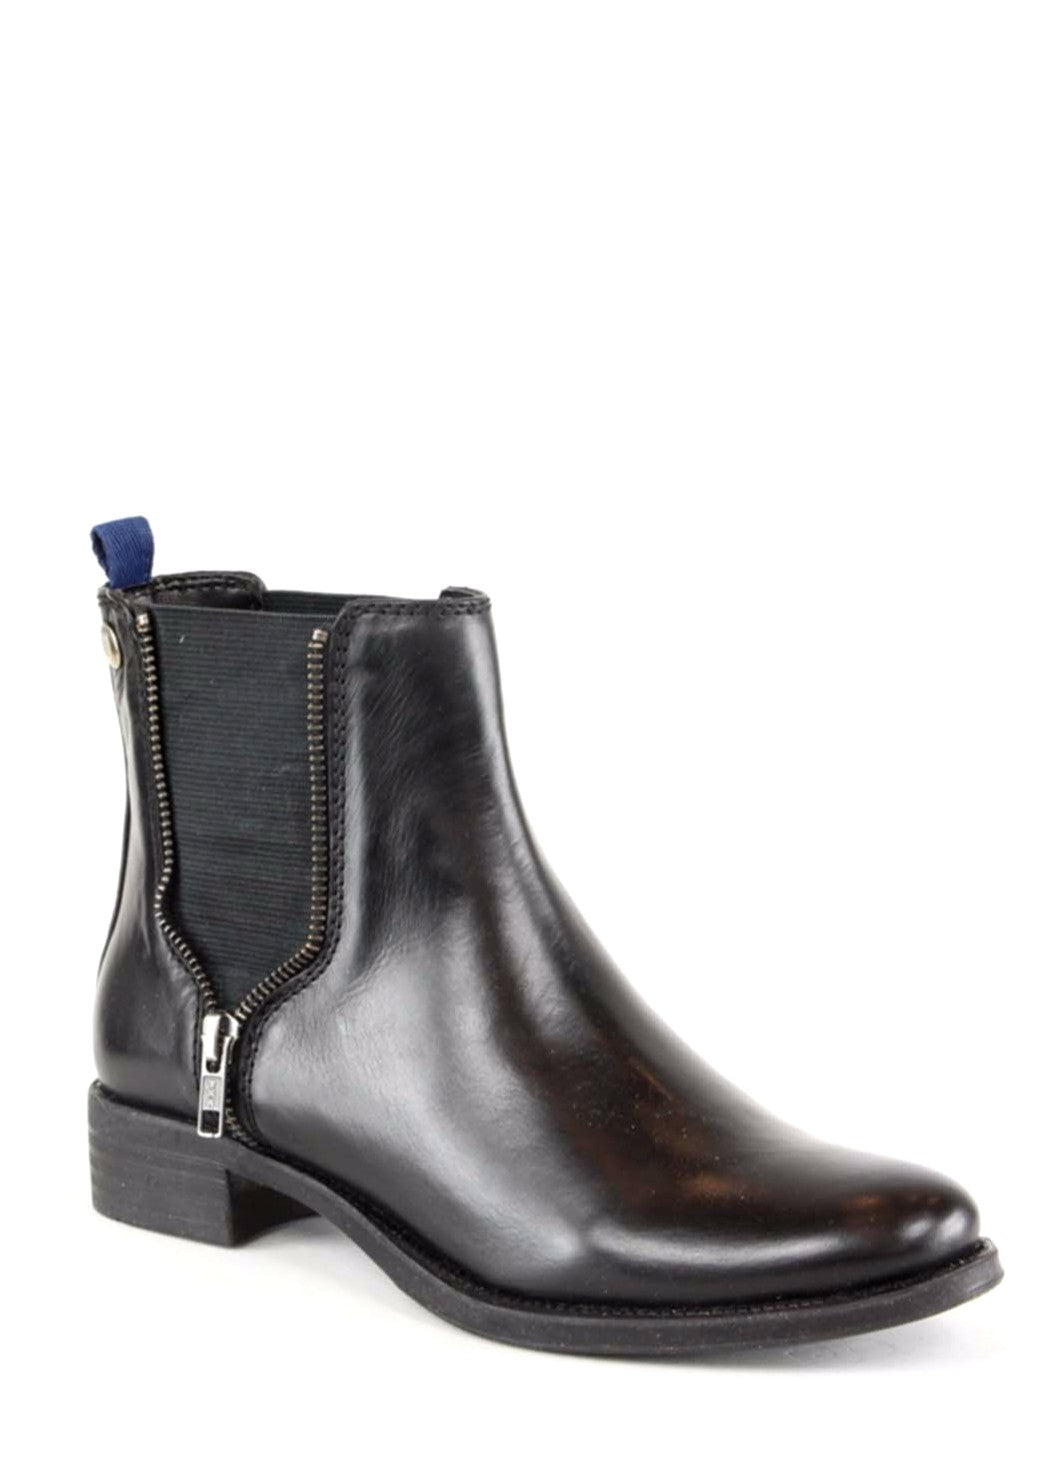 MILLY - Leather Ankle Boots - SOLD OUT